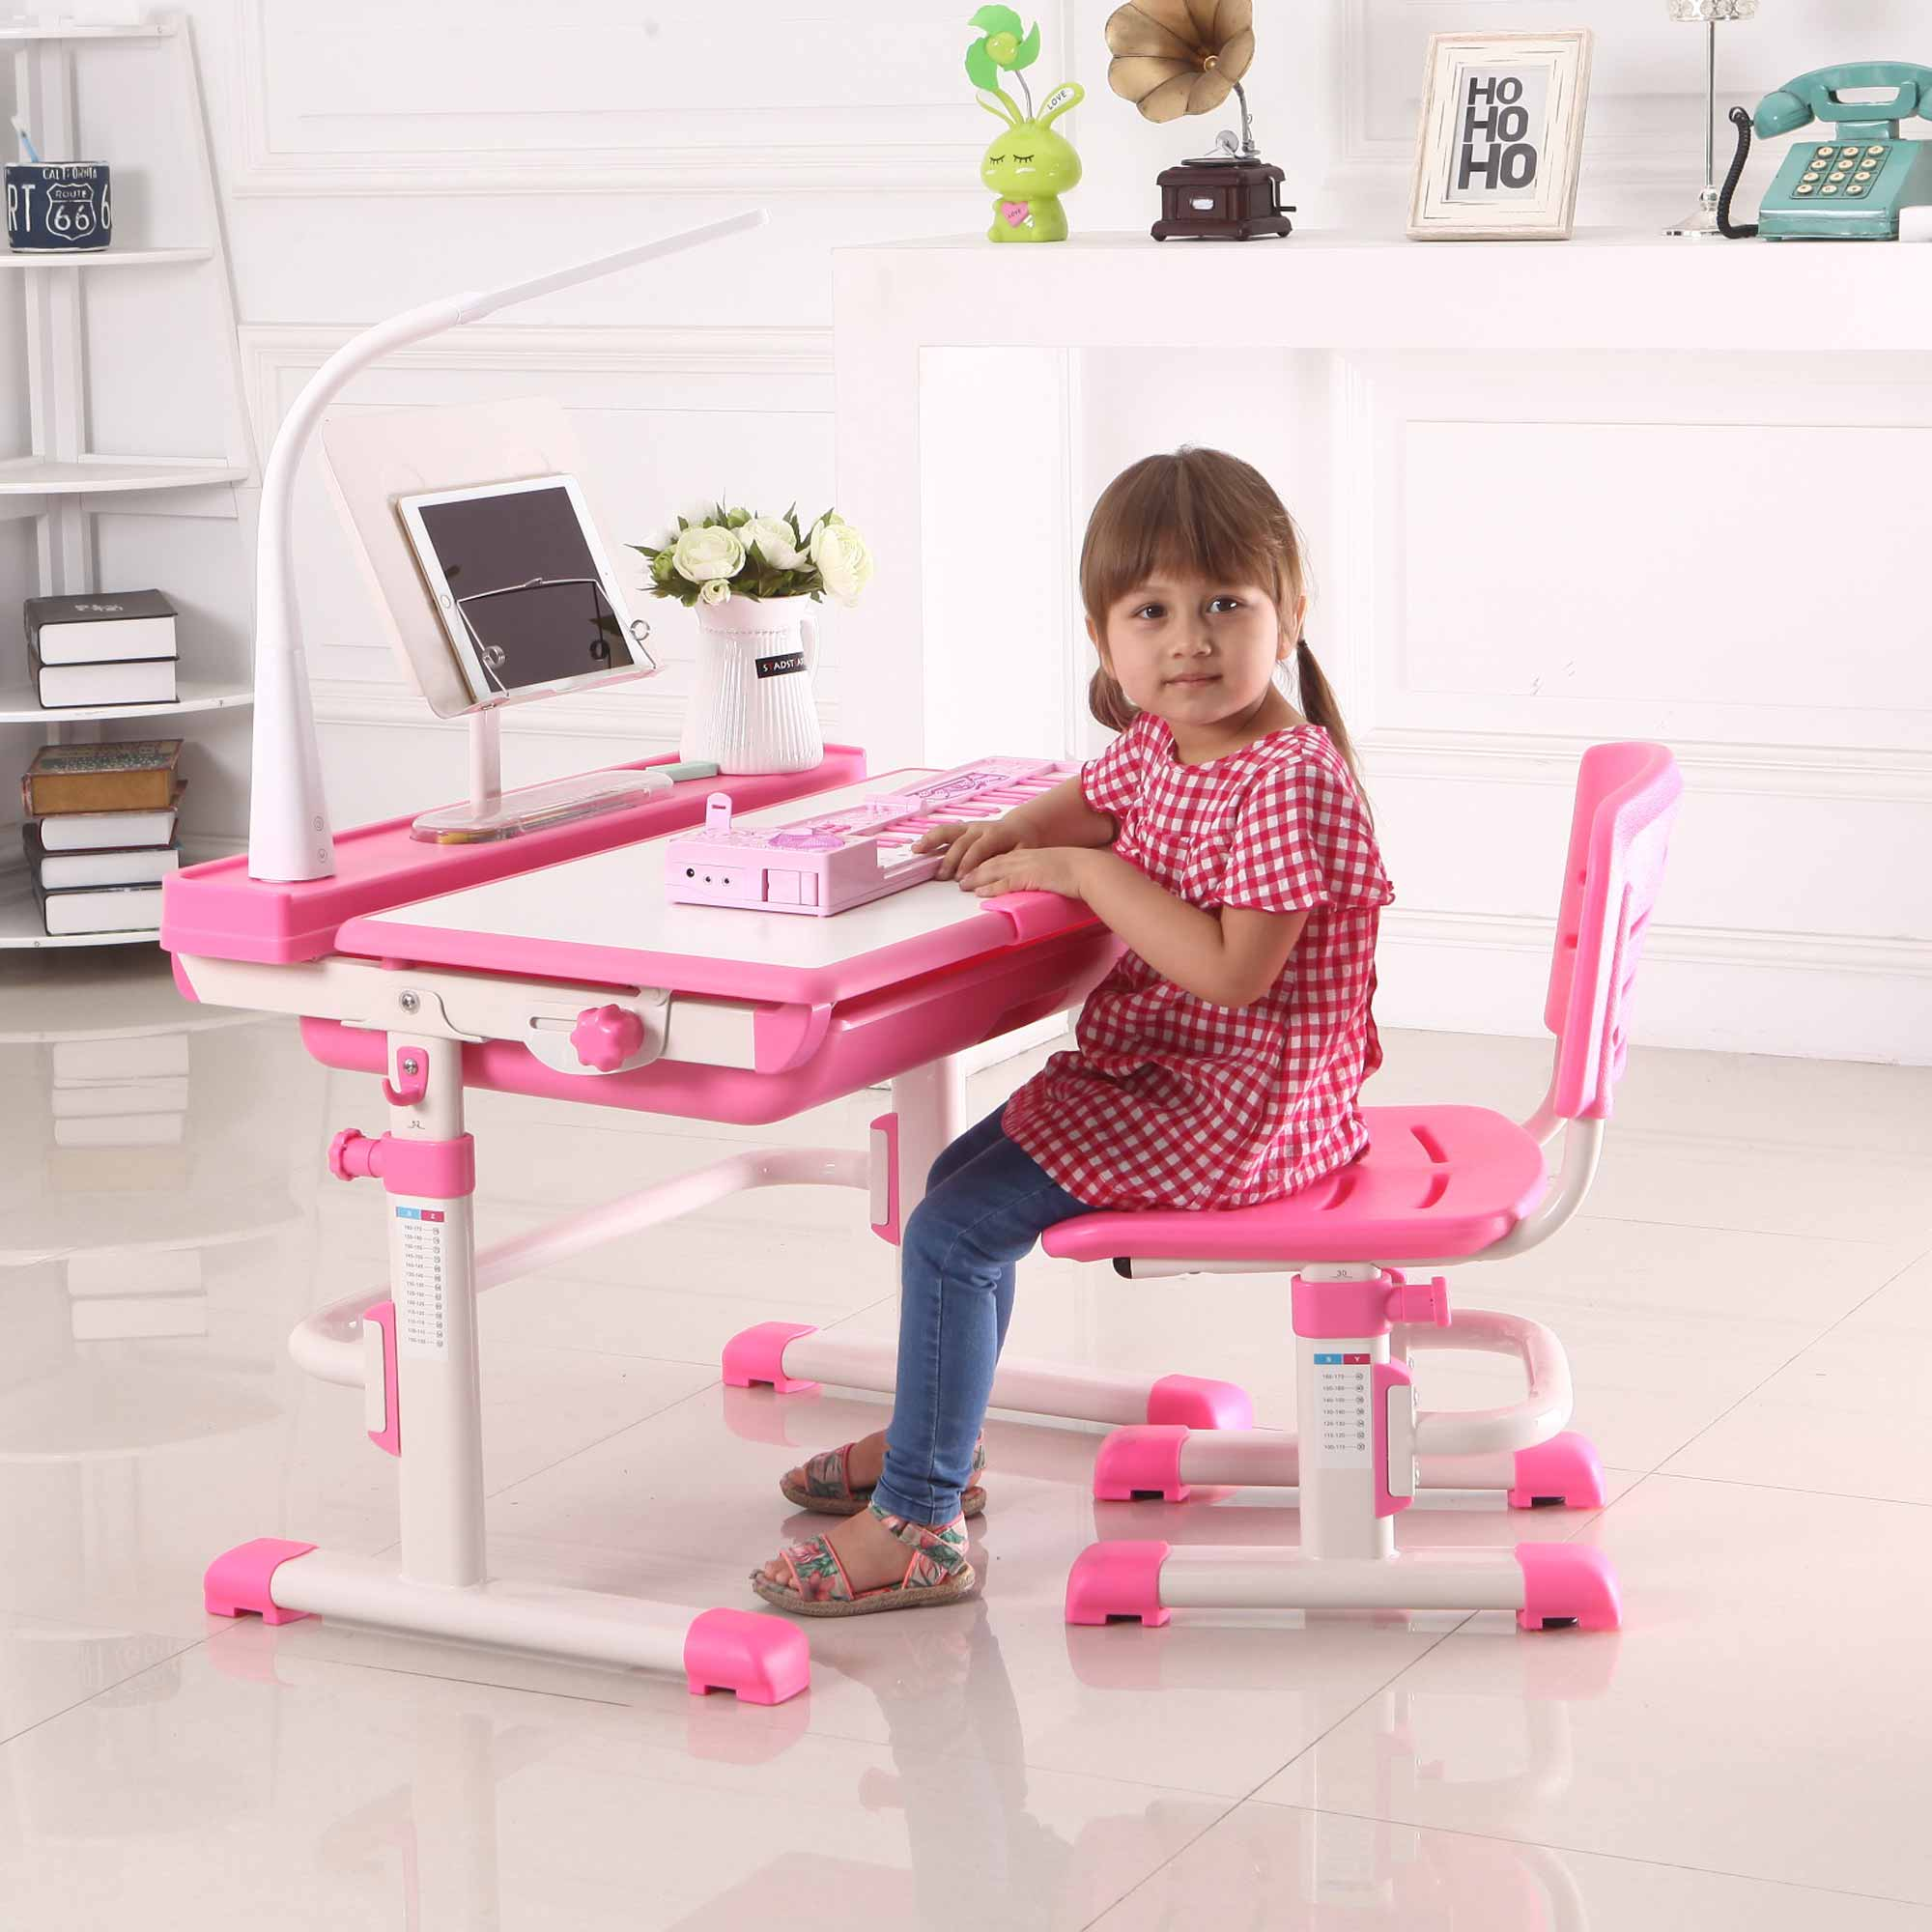 kids-desk-study-table-height-adjustable-children-desk-sprite-pink-table-for-girls-sprite-02-1